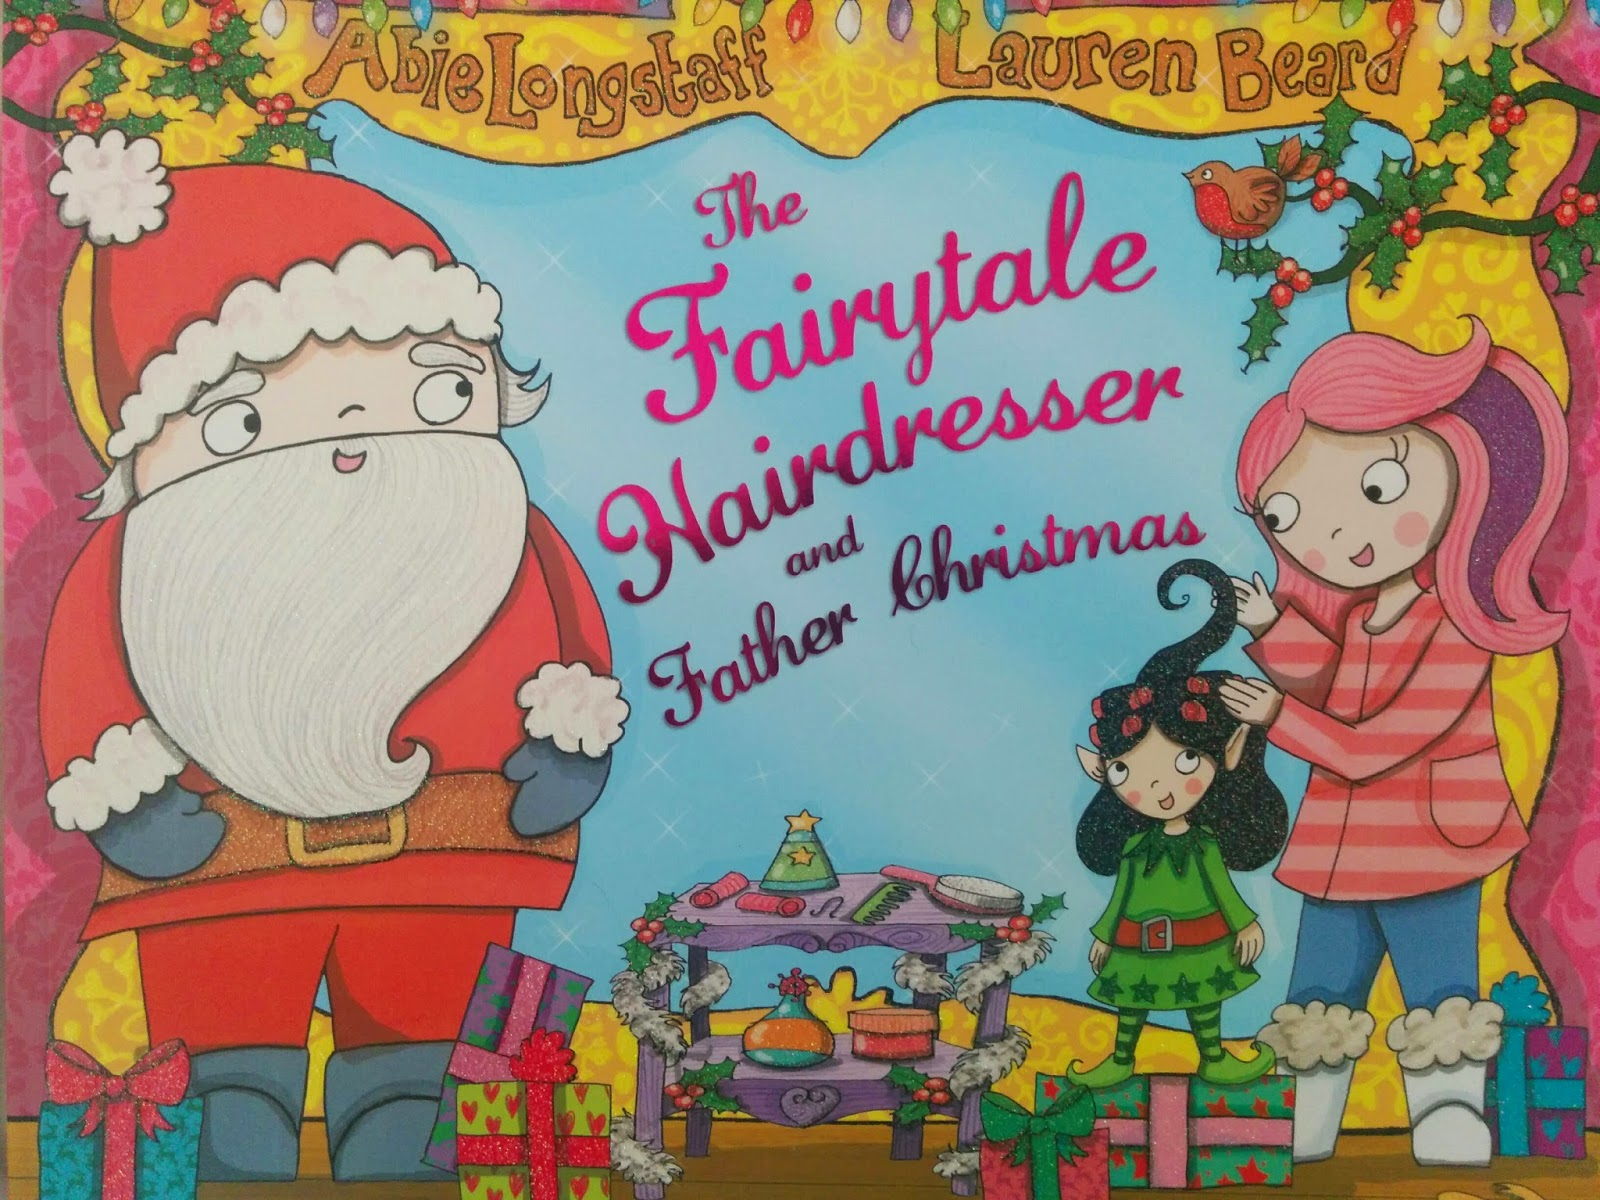 http://www.bookdepository.com/Fairytale-Hairdresser-Father-Christmas-Abie-Longstaff/9780552570527/?a_aid=Enchante